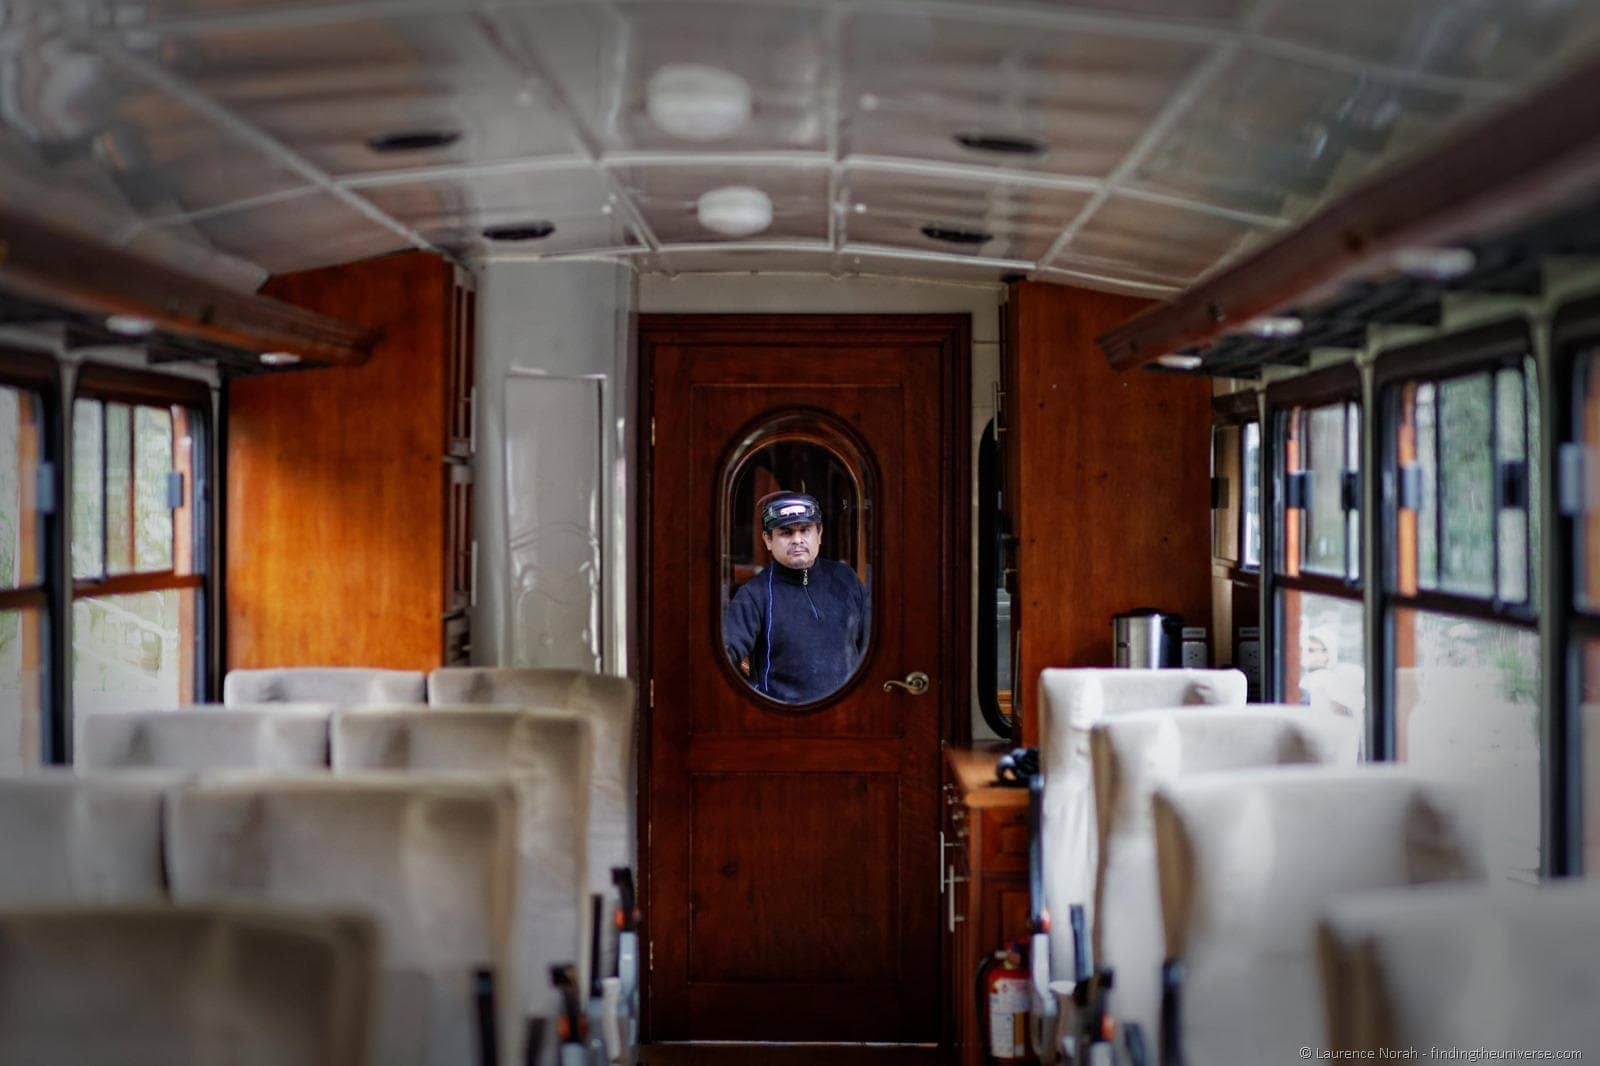 Train guard ecuador nariz diablo devil nose interior carriage